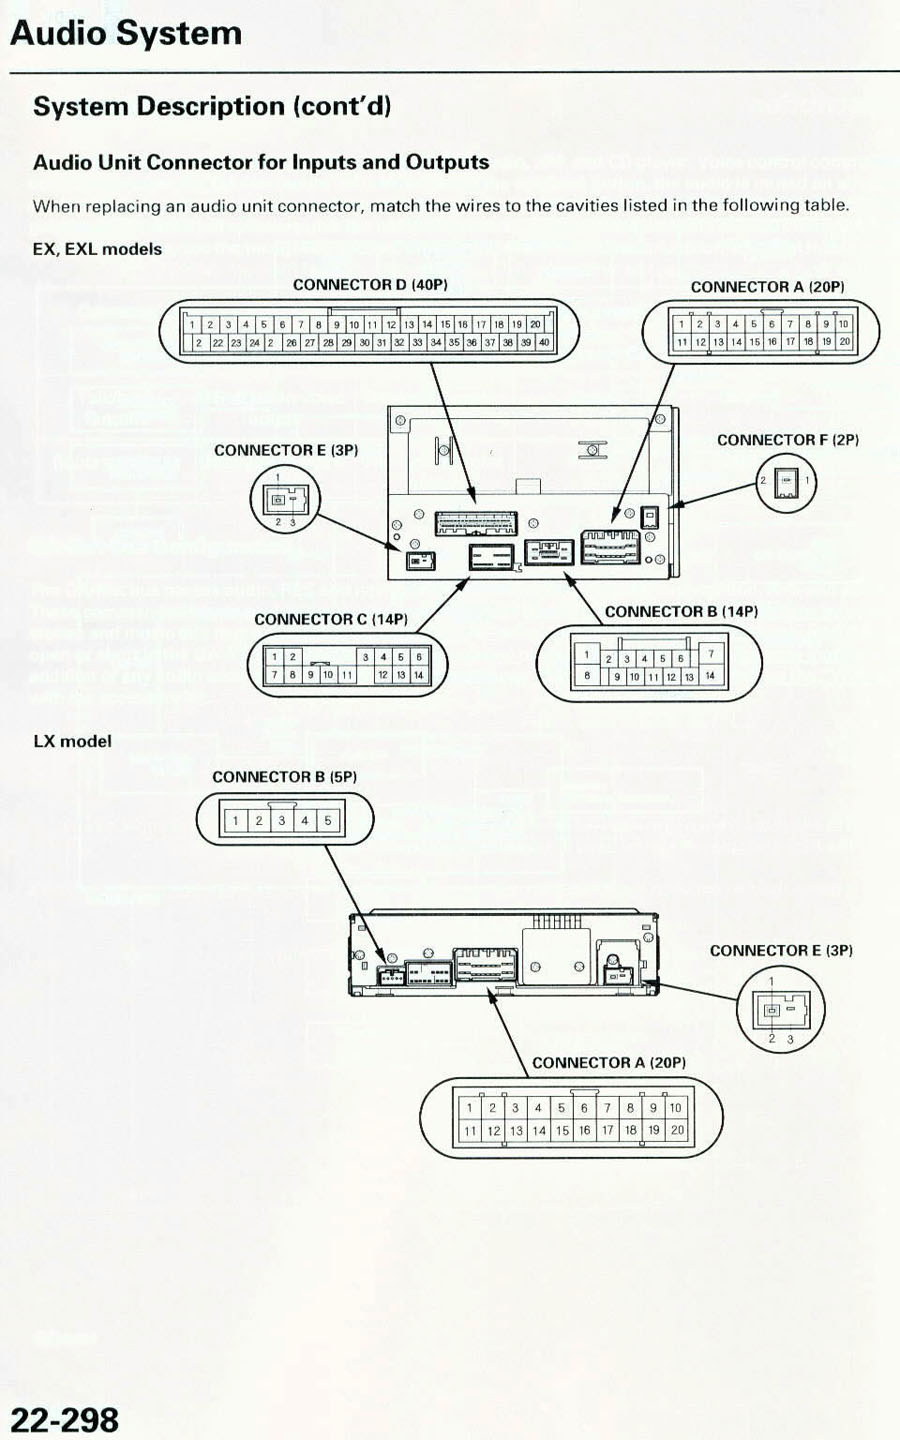 32969d1200063279 re factory subwoofer aftermarket hu audio_connector 2006 re factory subwoofer and aftermarket hu honda pilot honda 2009 honda pilot wiring diagram at gsmx.co